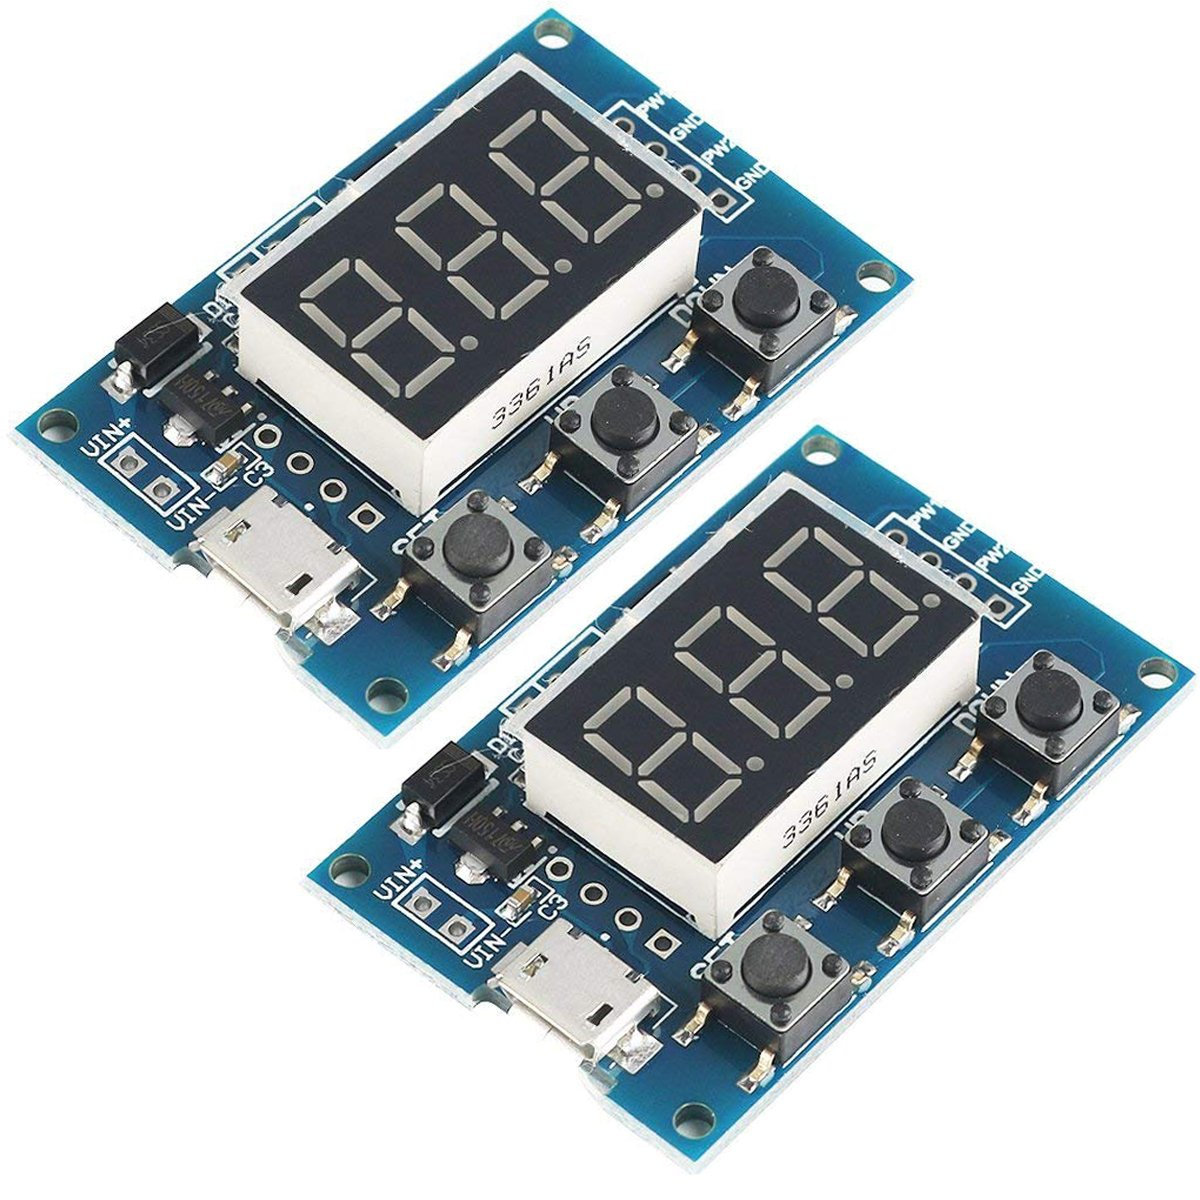 MakerHawk 2pcs Digital 2 Channal PWM Square Wave Pulse Signal Generator Adjustable Frequency Duty Cycle 100% 1Hz-150KHz for Stepper Motor Driver